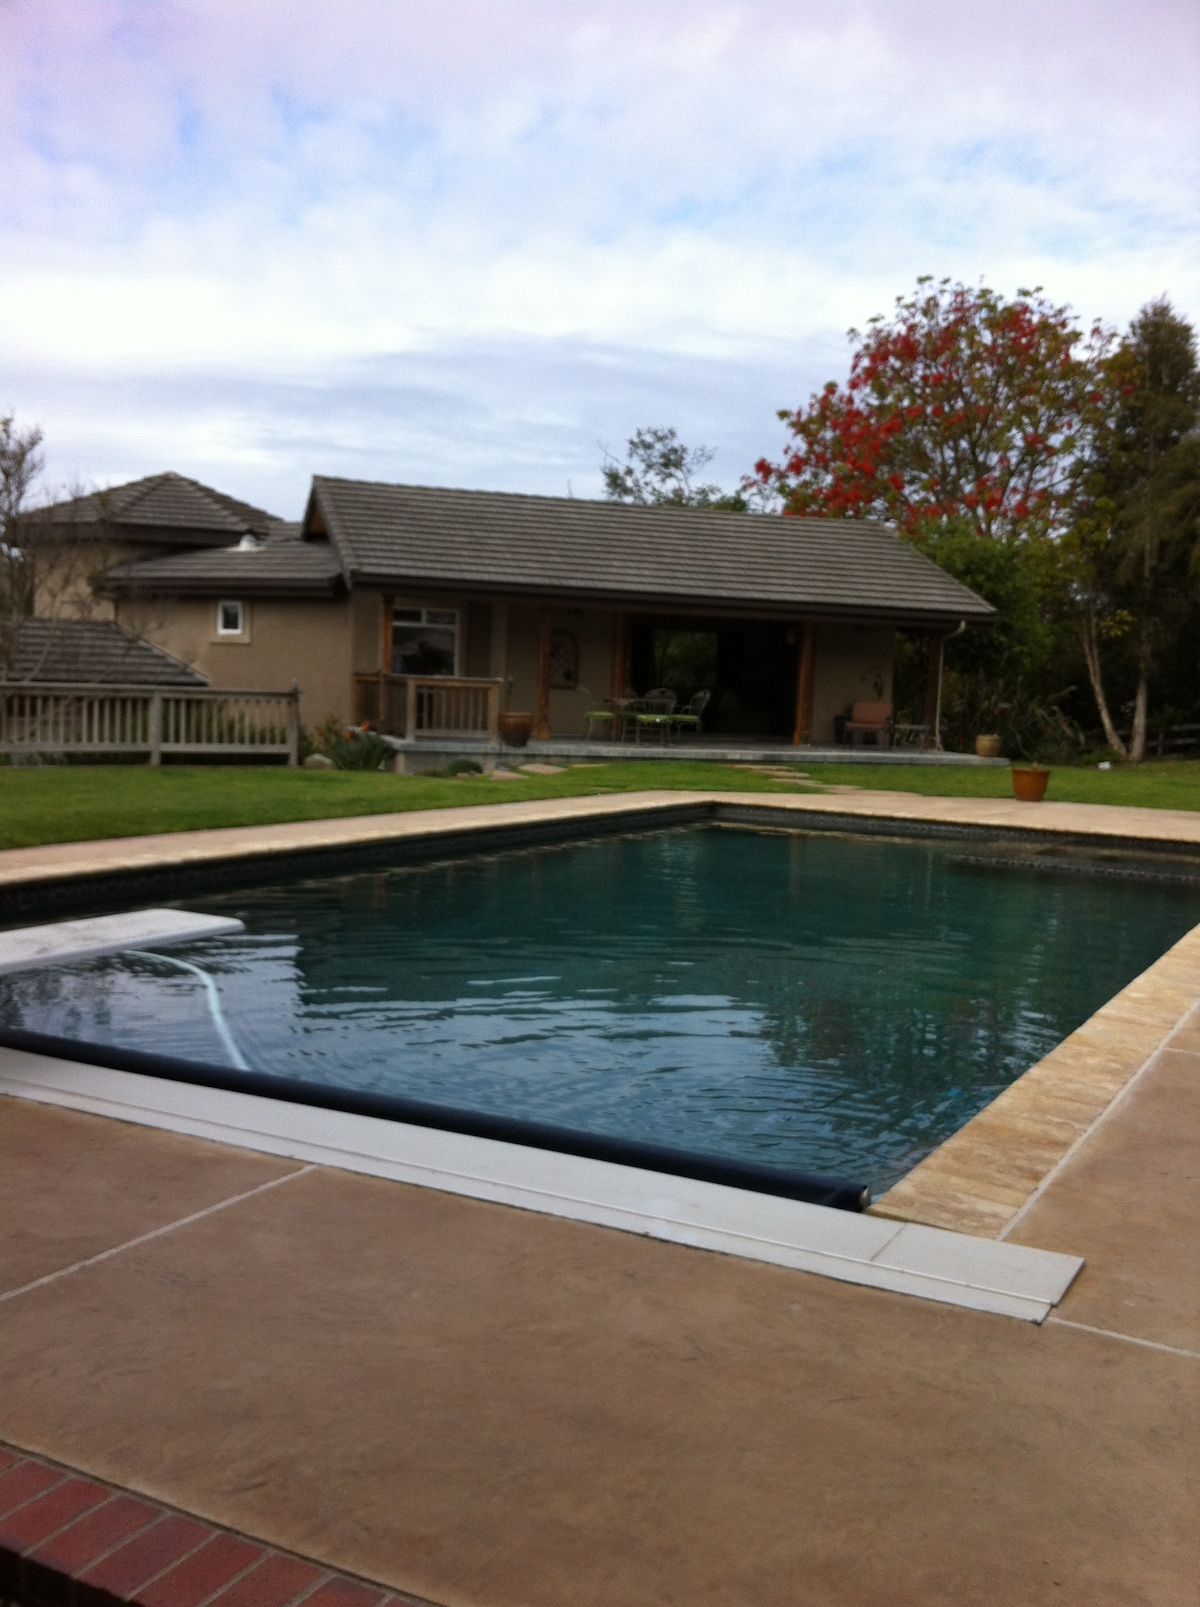 Pool and front entry. Pool towels provided.